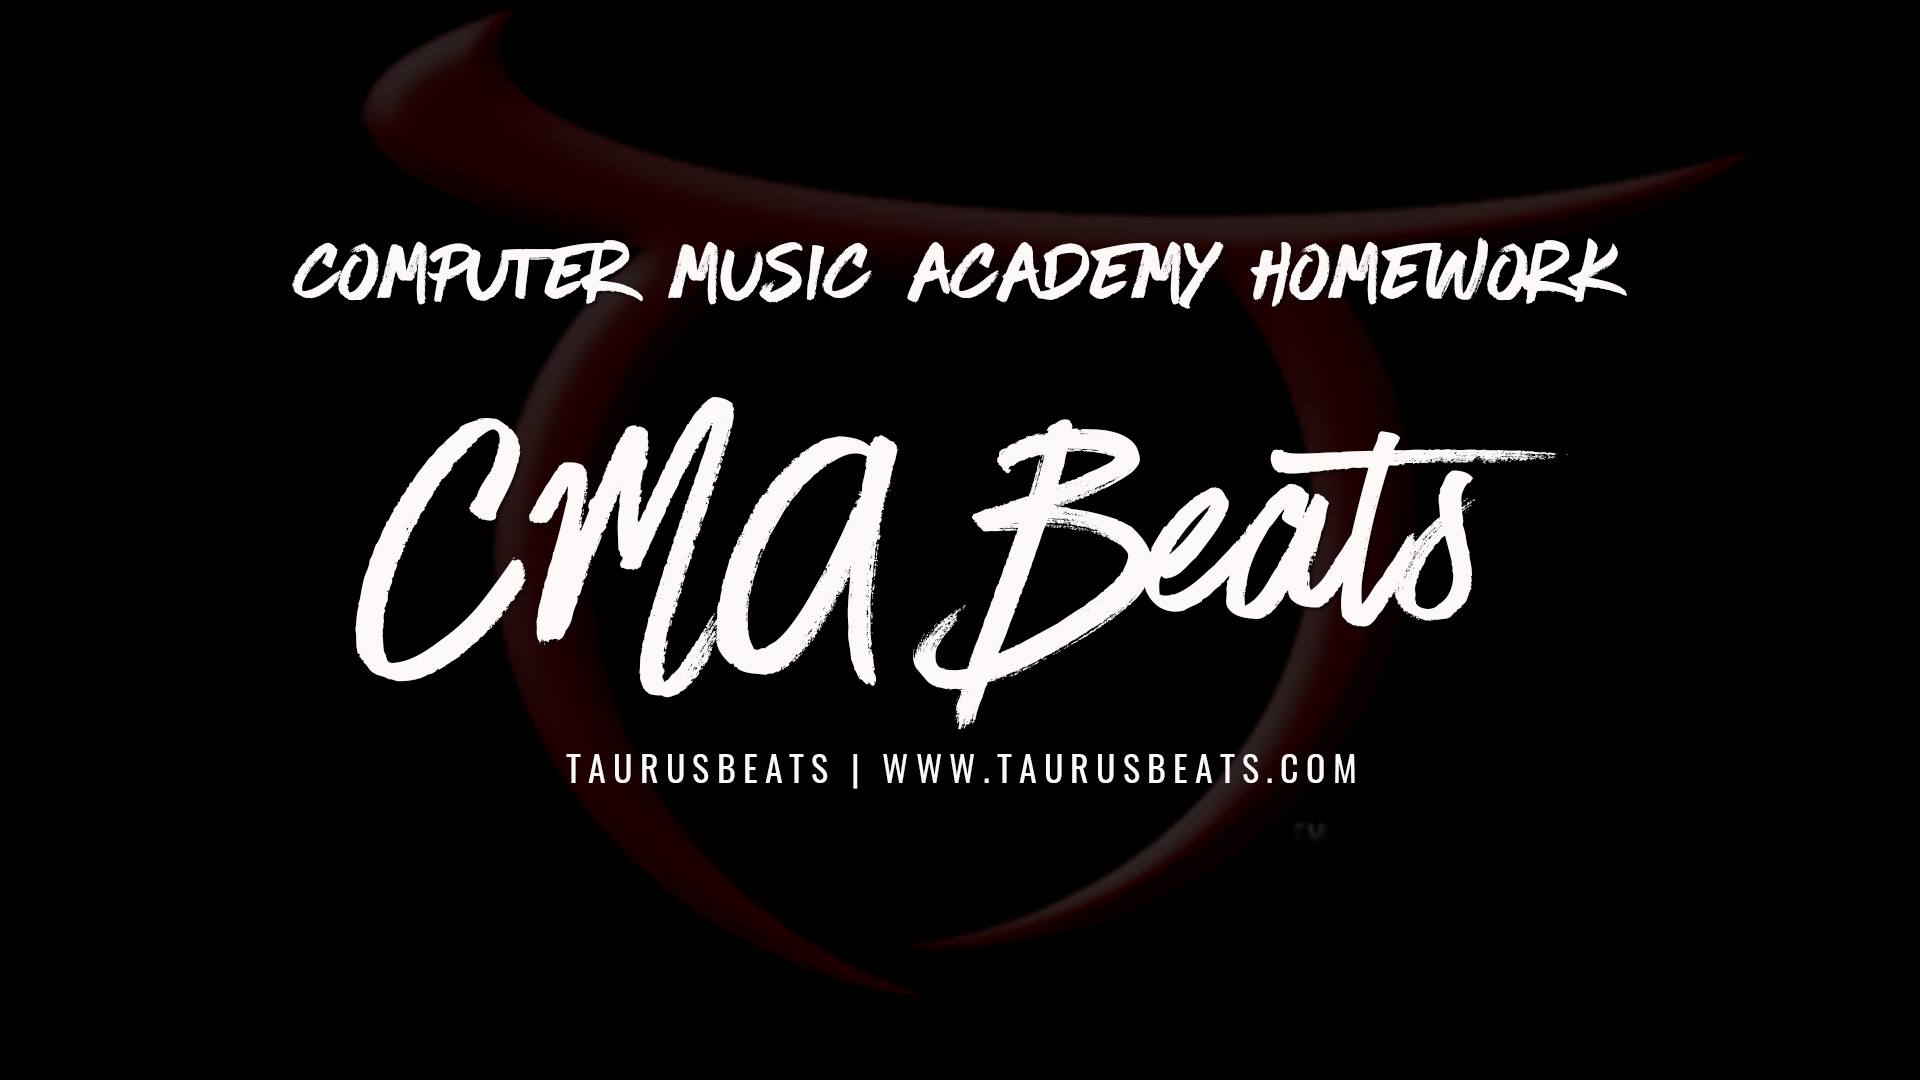 image for CMA Beats (2014-2016)